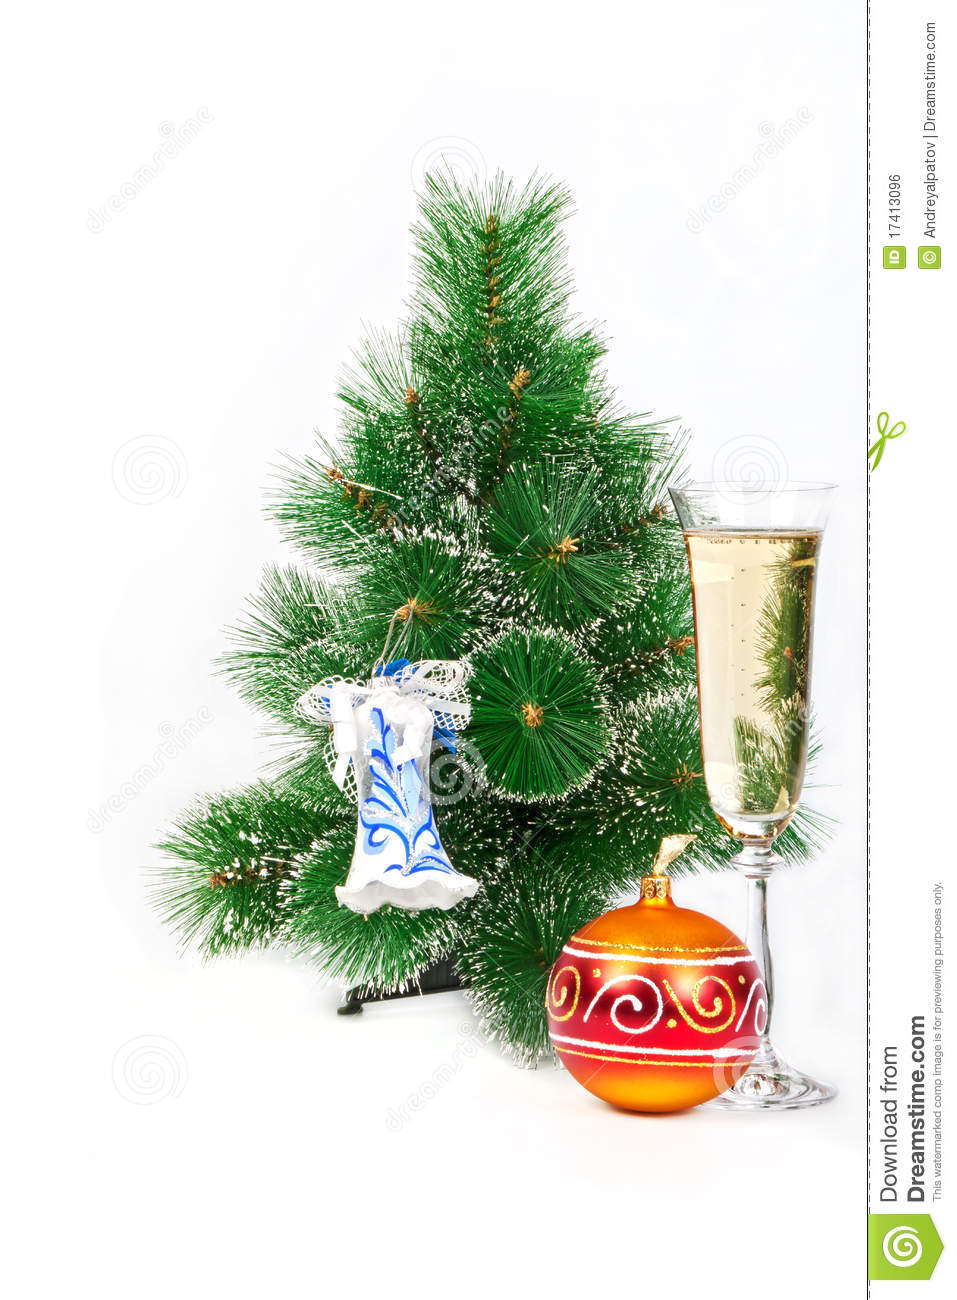 Christmas Tree With Toys : Christmas tree decorated with toys and a glass of stock